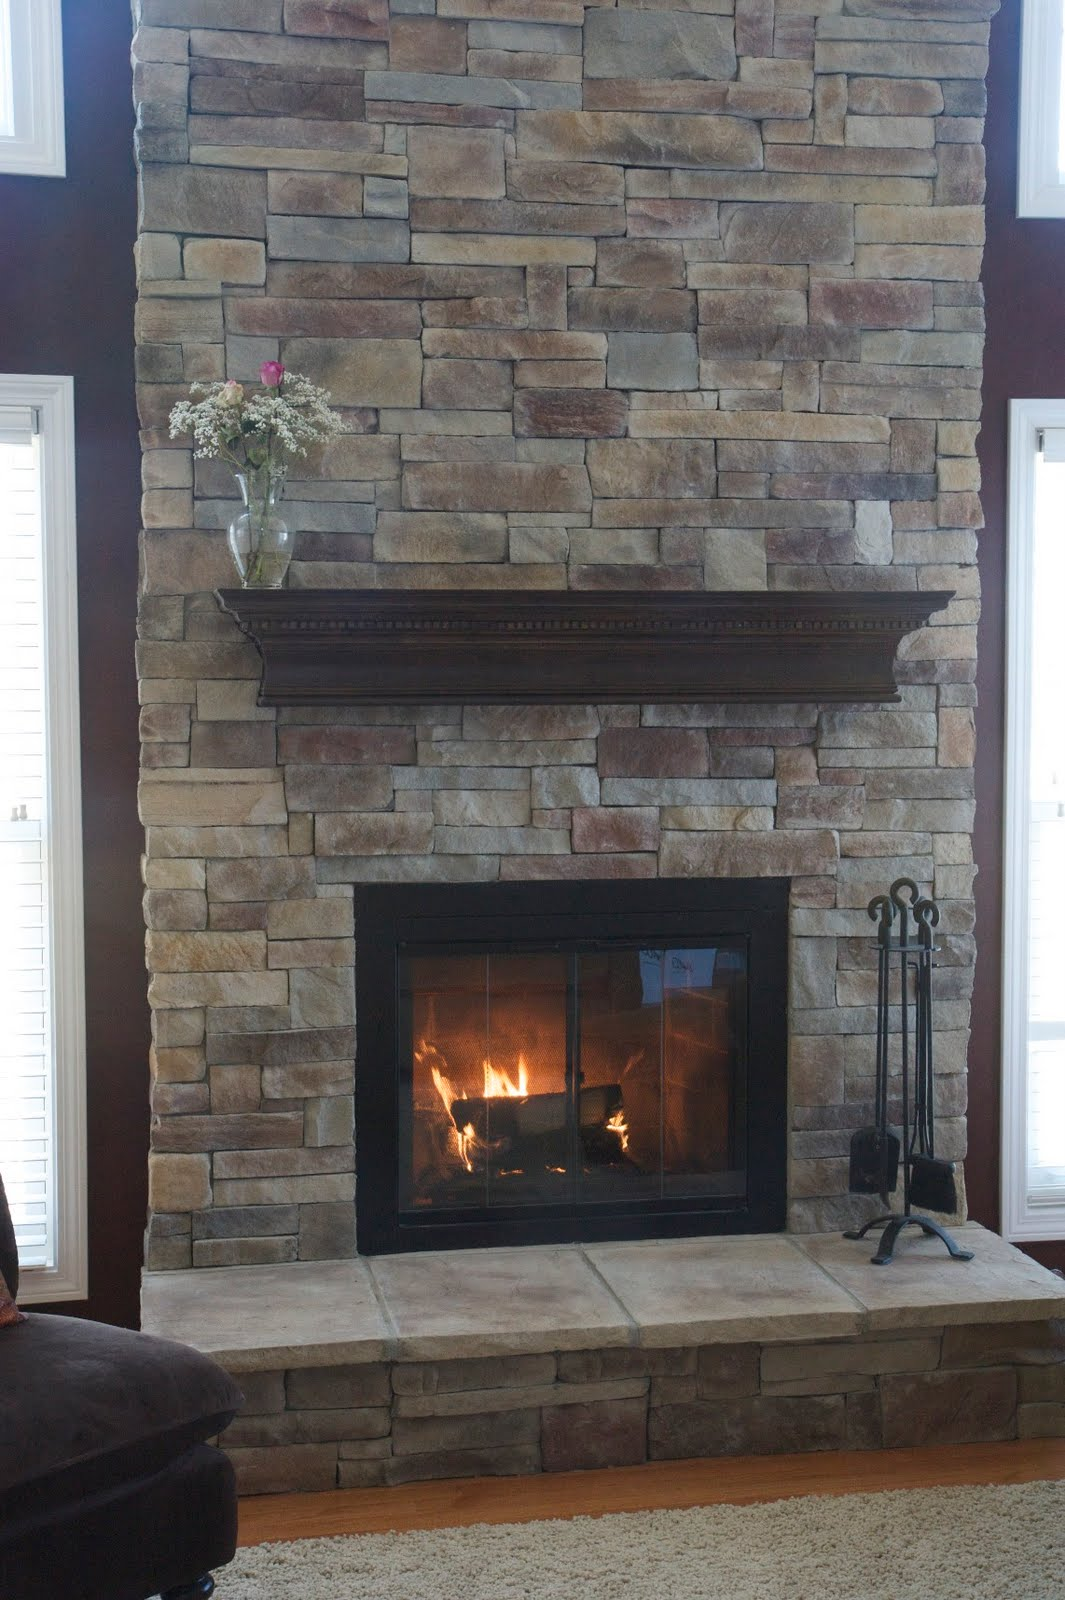 North Star Stone- Stone Fireplaces & Stone Exteriors: Did You Know You ...